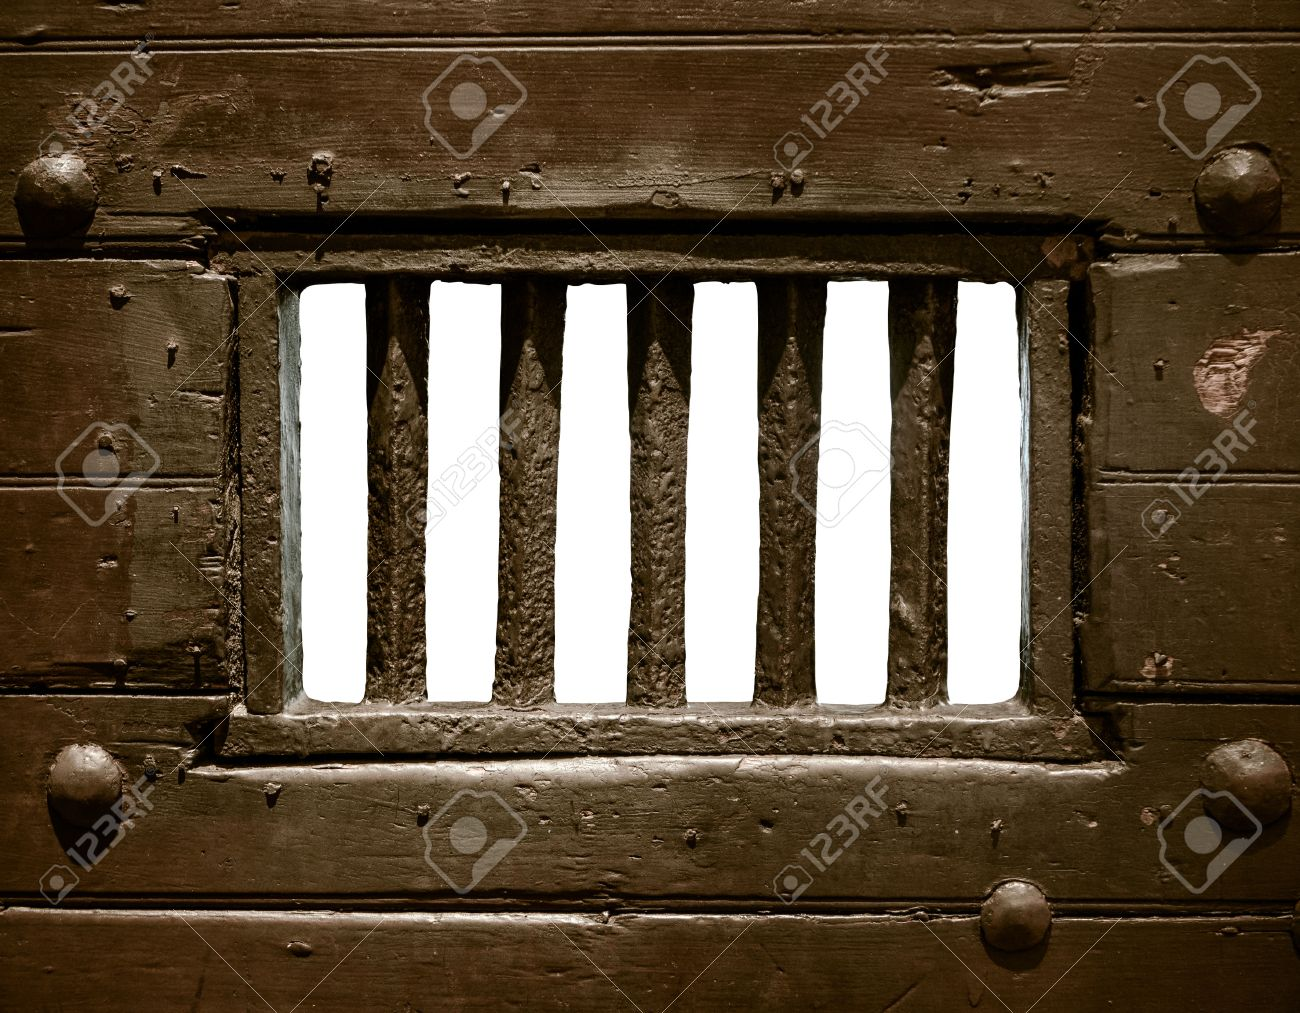 Detail Of The Bars Of An Old Prison Or Jail Cell Door & Prison Cell Door Stock Photos. Royalty Free Prison Cell Door Images